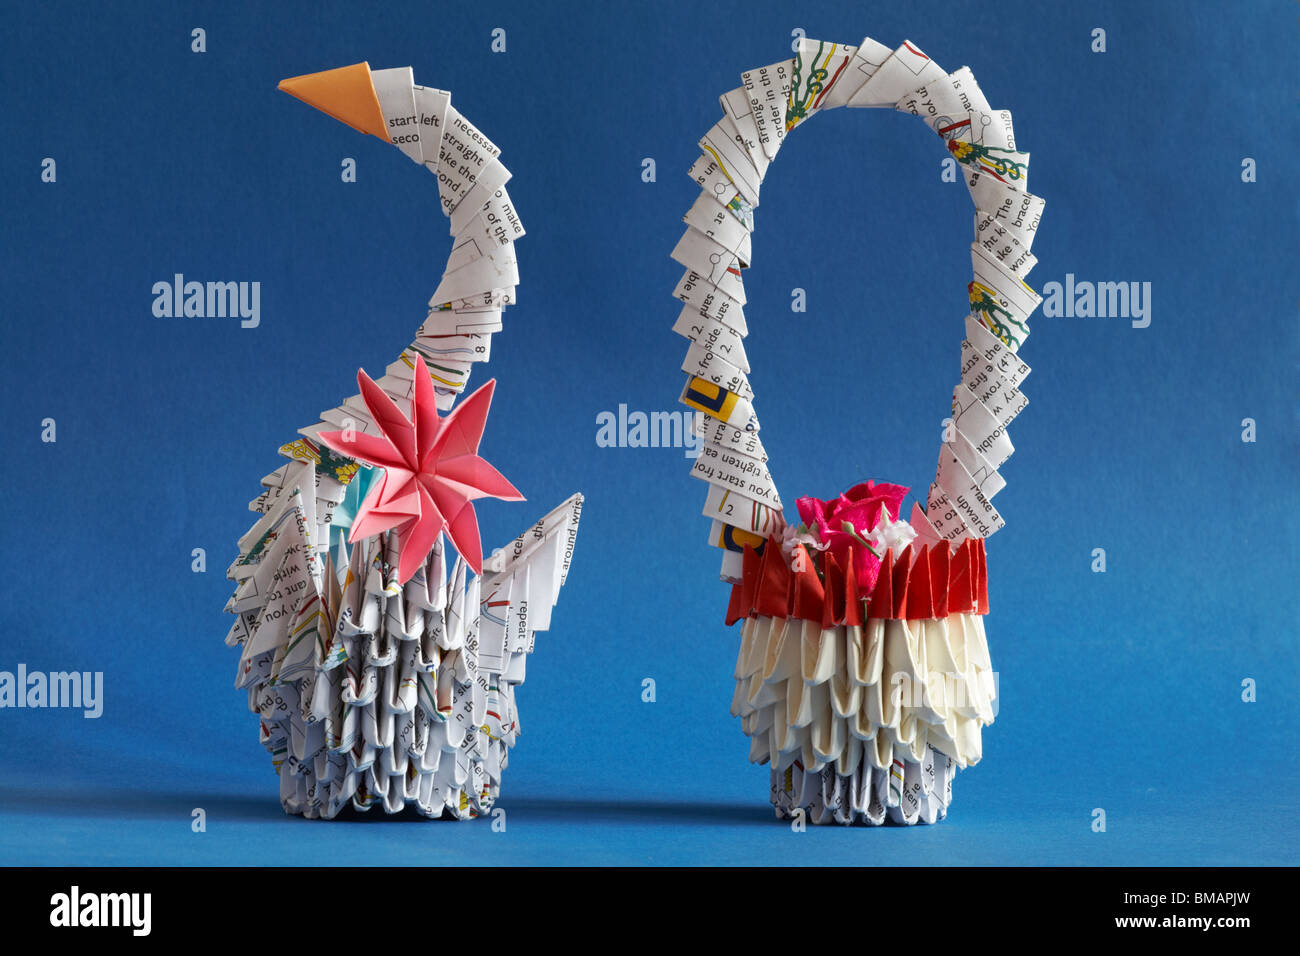 Origami Swan And Basket Of Flowers The Art Of Paper Folding Stock